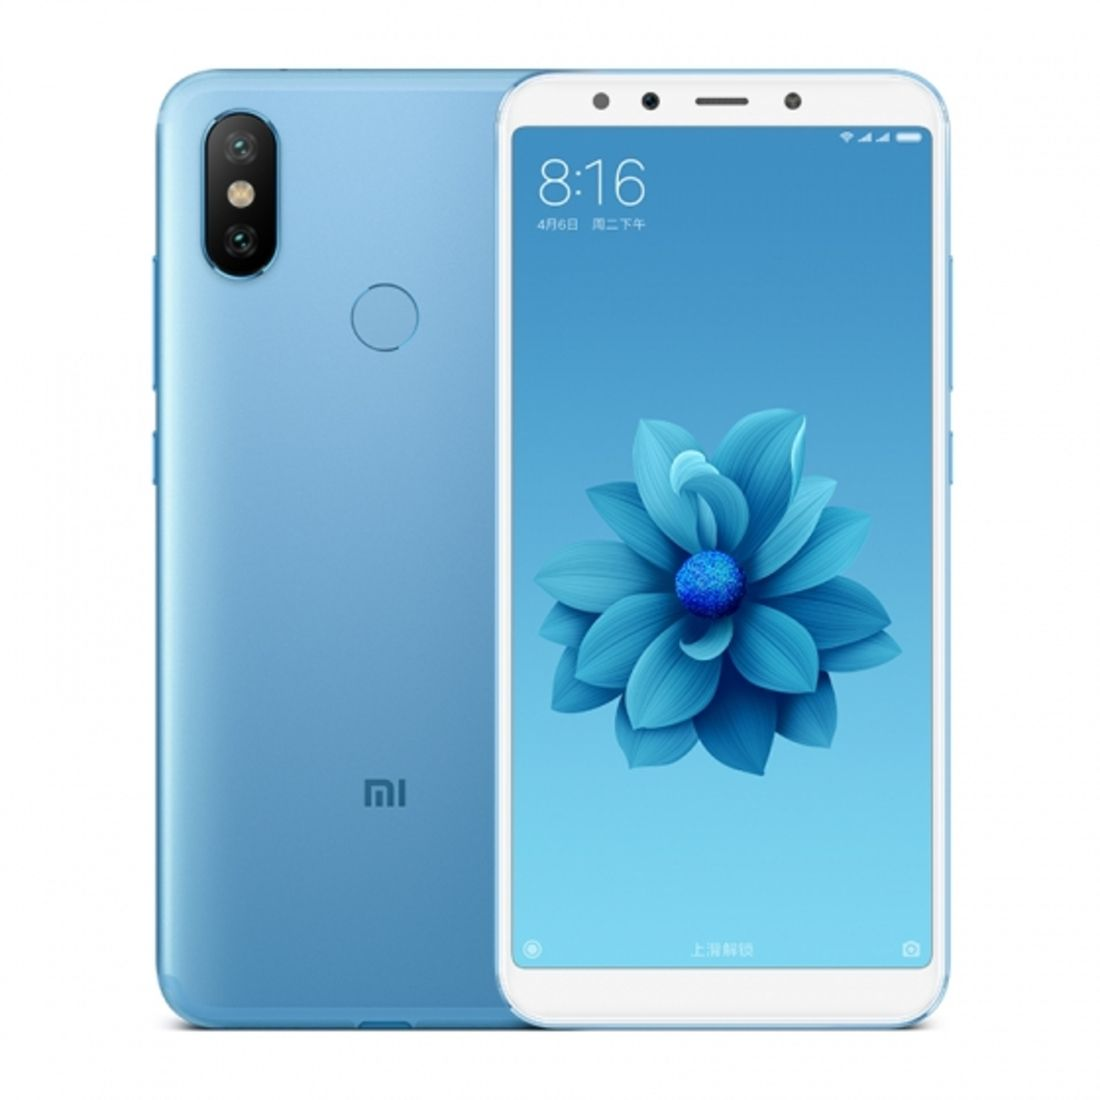 Smartphone Mi A2 4GB Ram Tela 5.99 64GB Camera Dupla 12+20MP - Azul